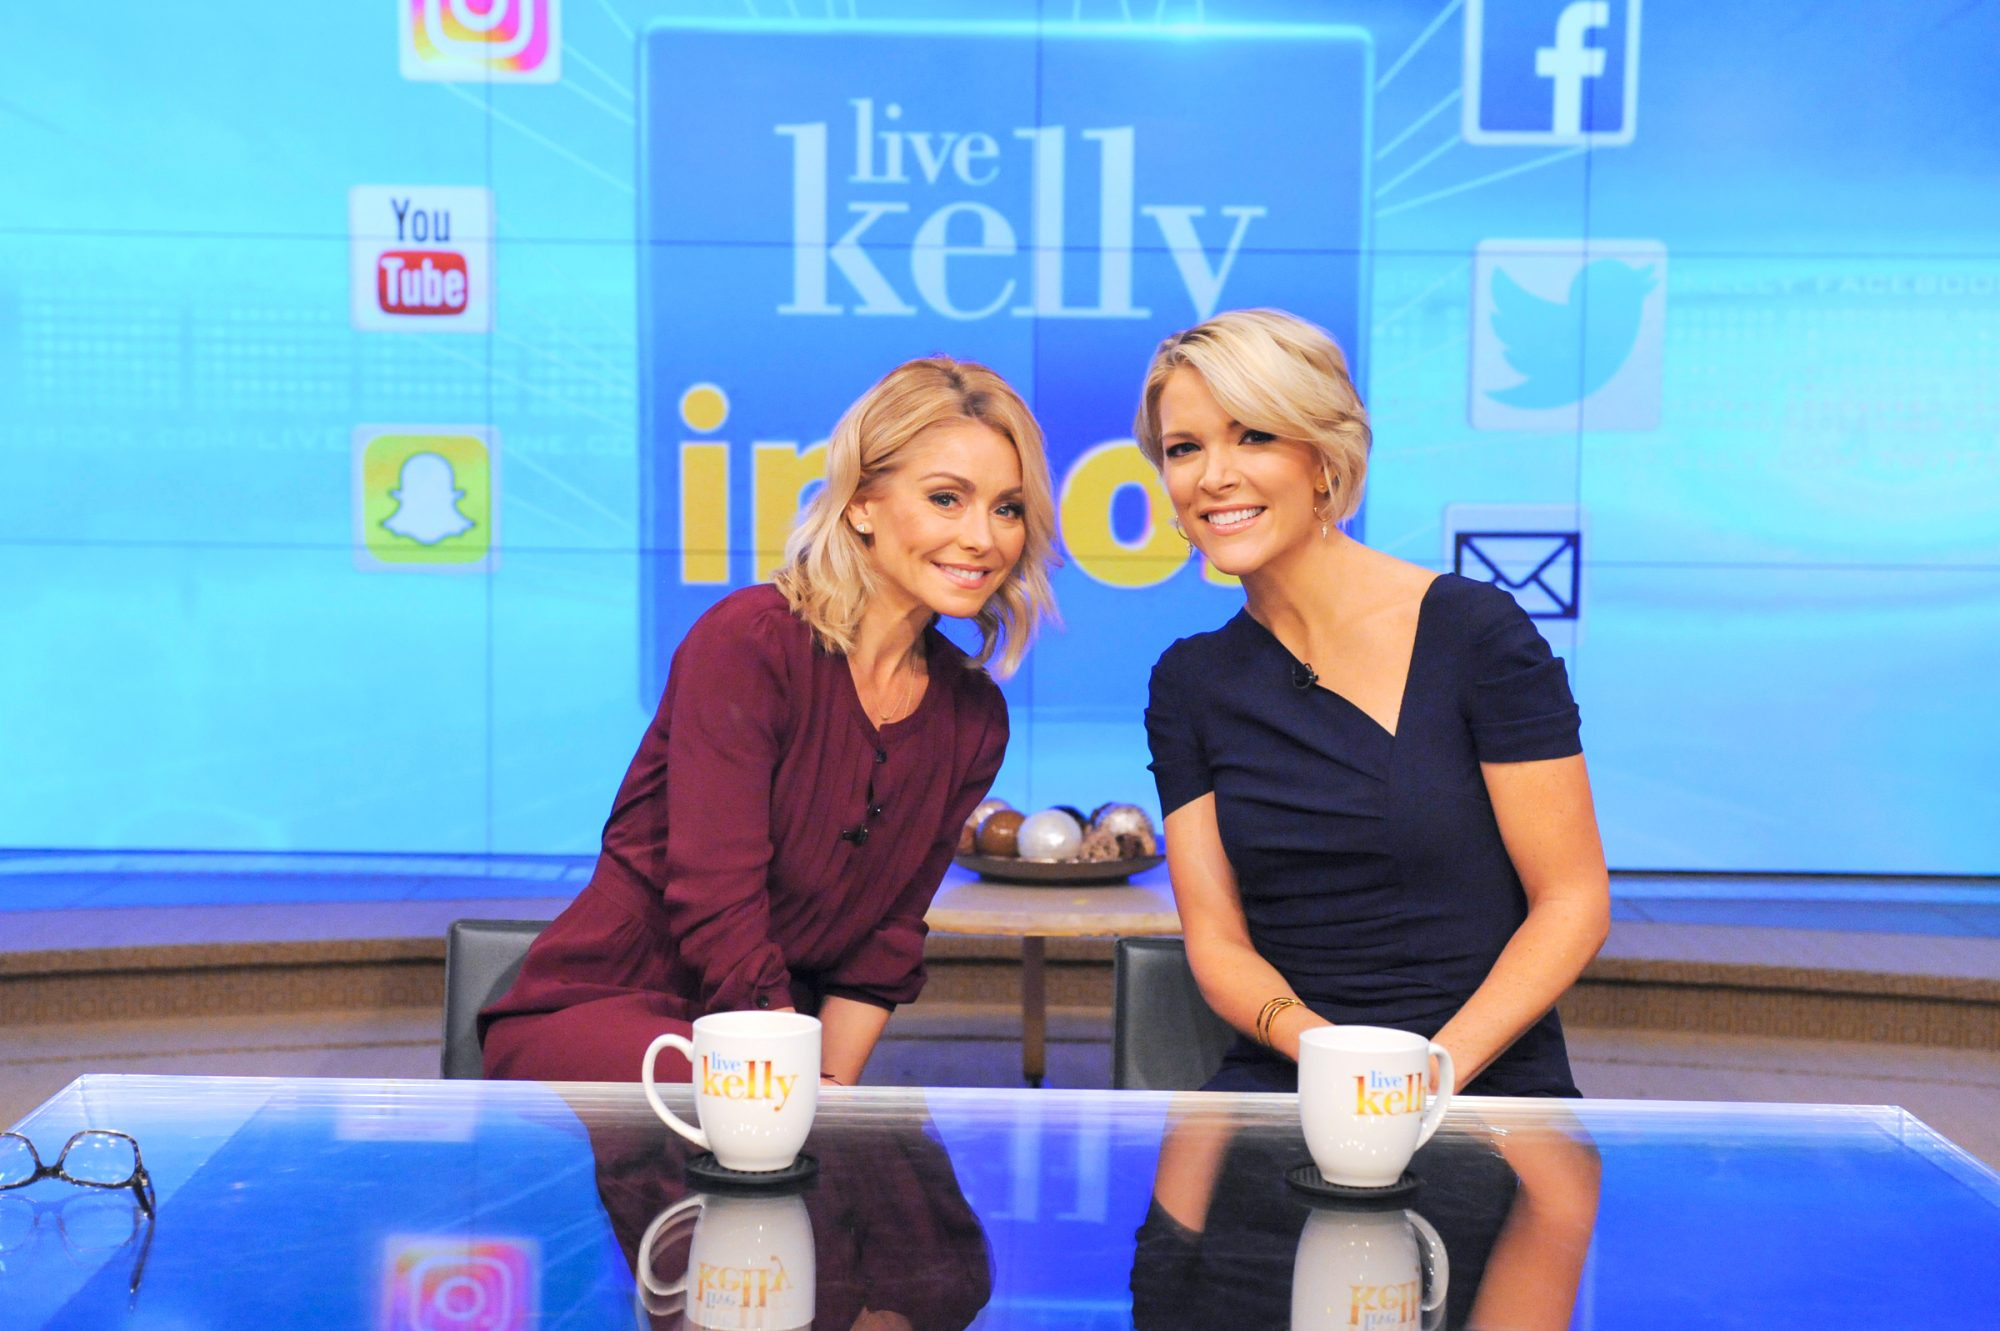 """Kelly Ripa and Megyn Kelly are pictured during the production of """"LIVE Kelly"""" in New York on Wednesday, November 9, 2016. Photo: Pawel Kaminski - Disney/ABC Home Entertainment and TV Distribution ©2016 Disney ABC. All Rights Reserved."""